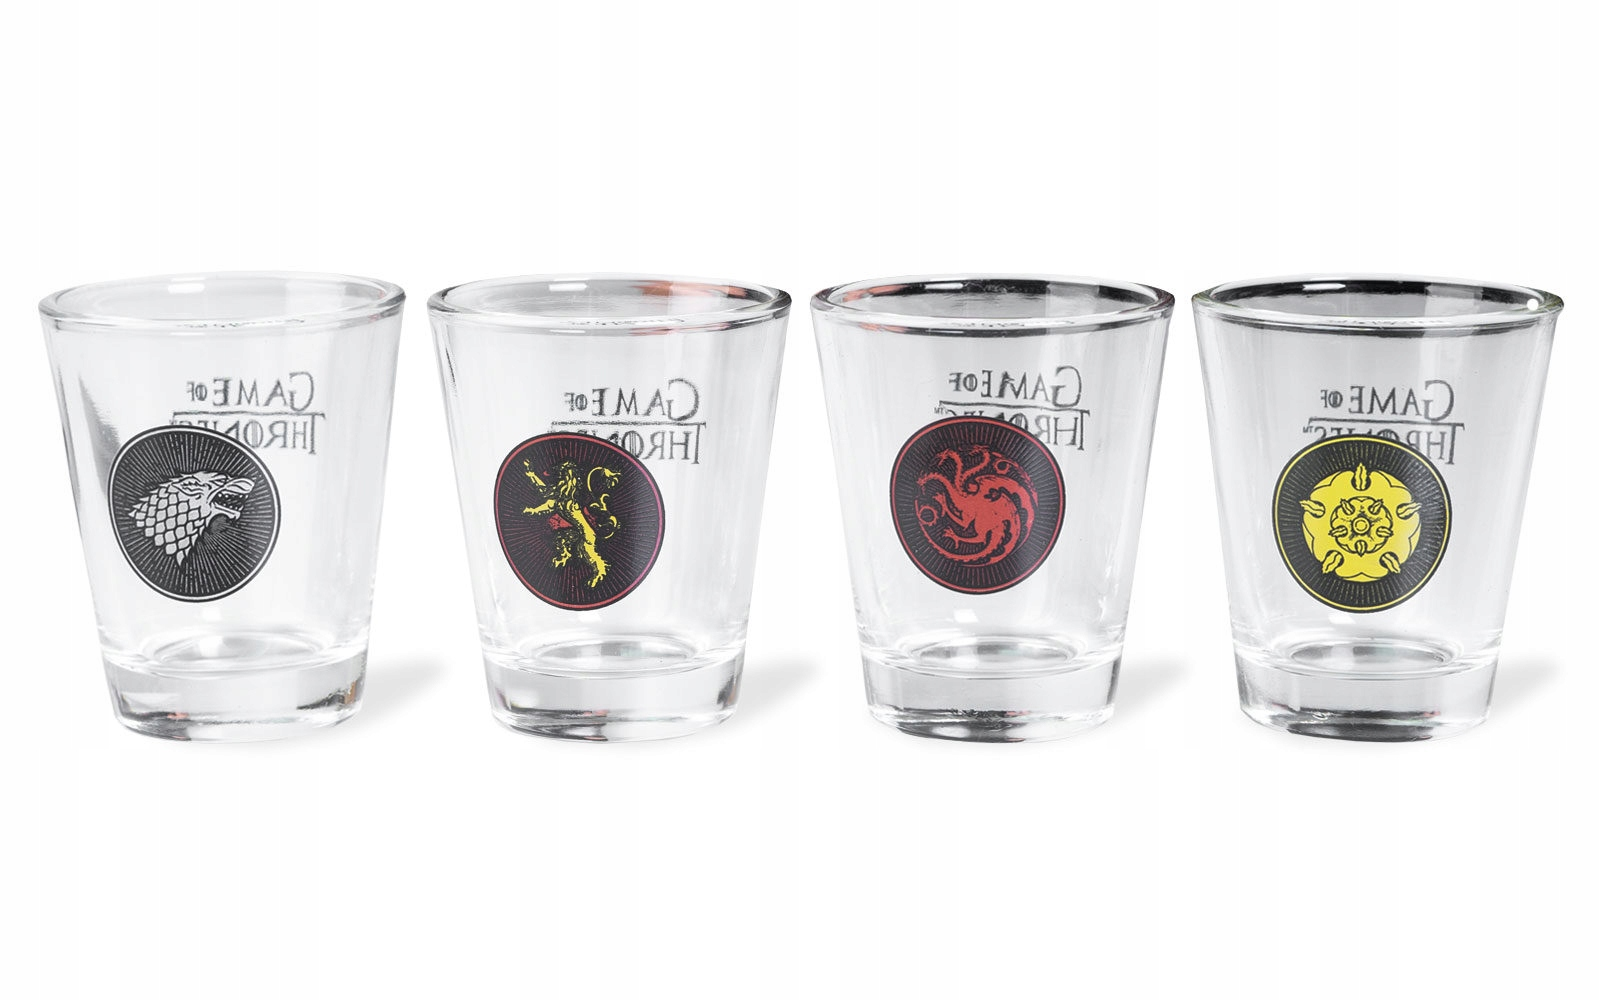 Item Game of thrones coats of Arms of Families - 4x shot glasses 50 ml